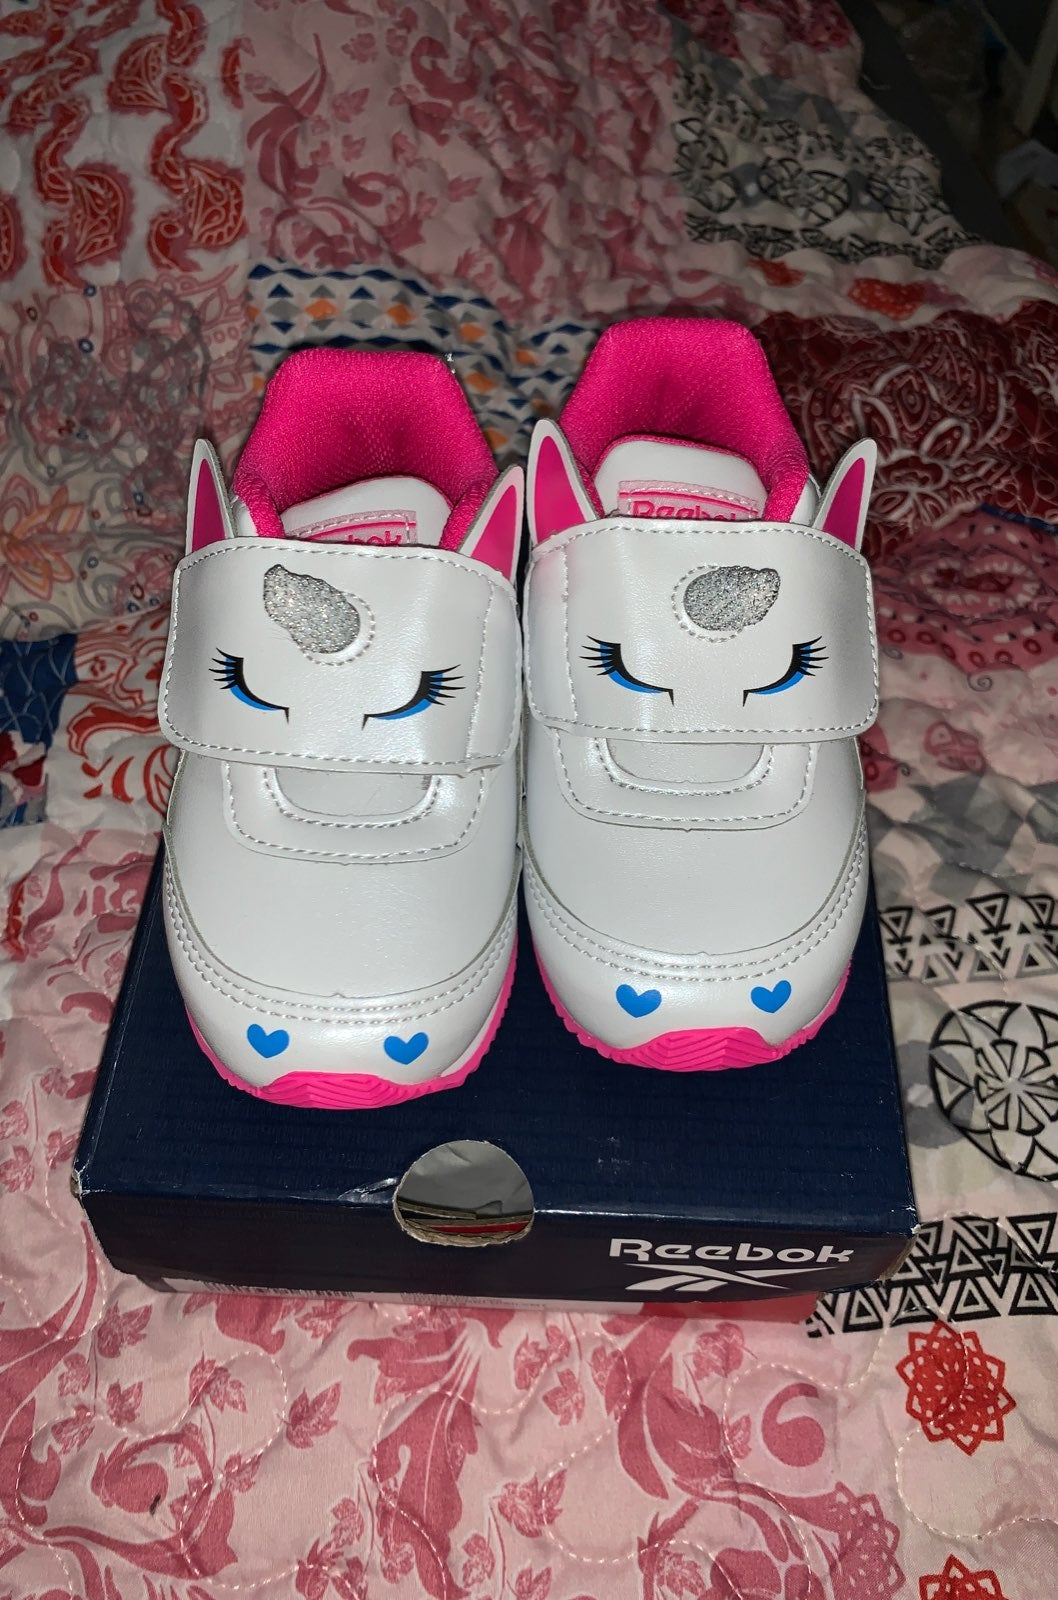 New Reebok unicorn royal shoes T6